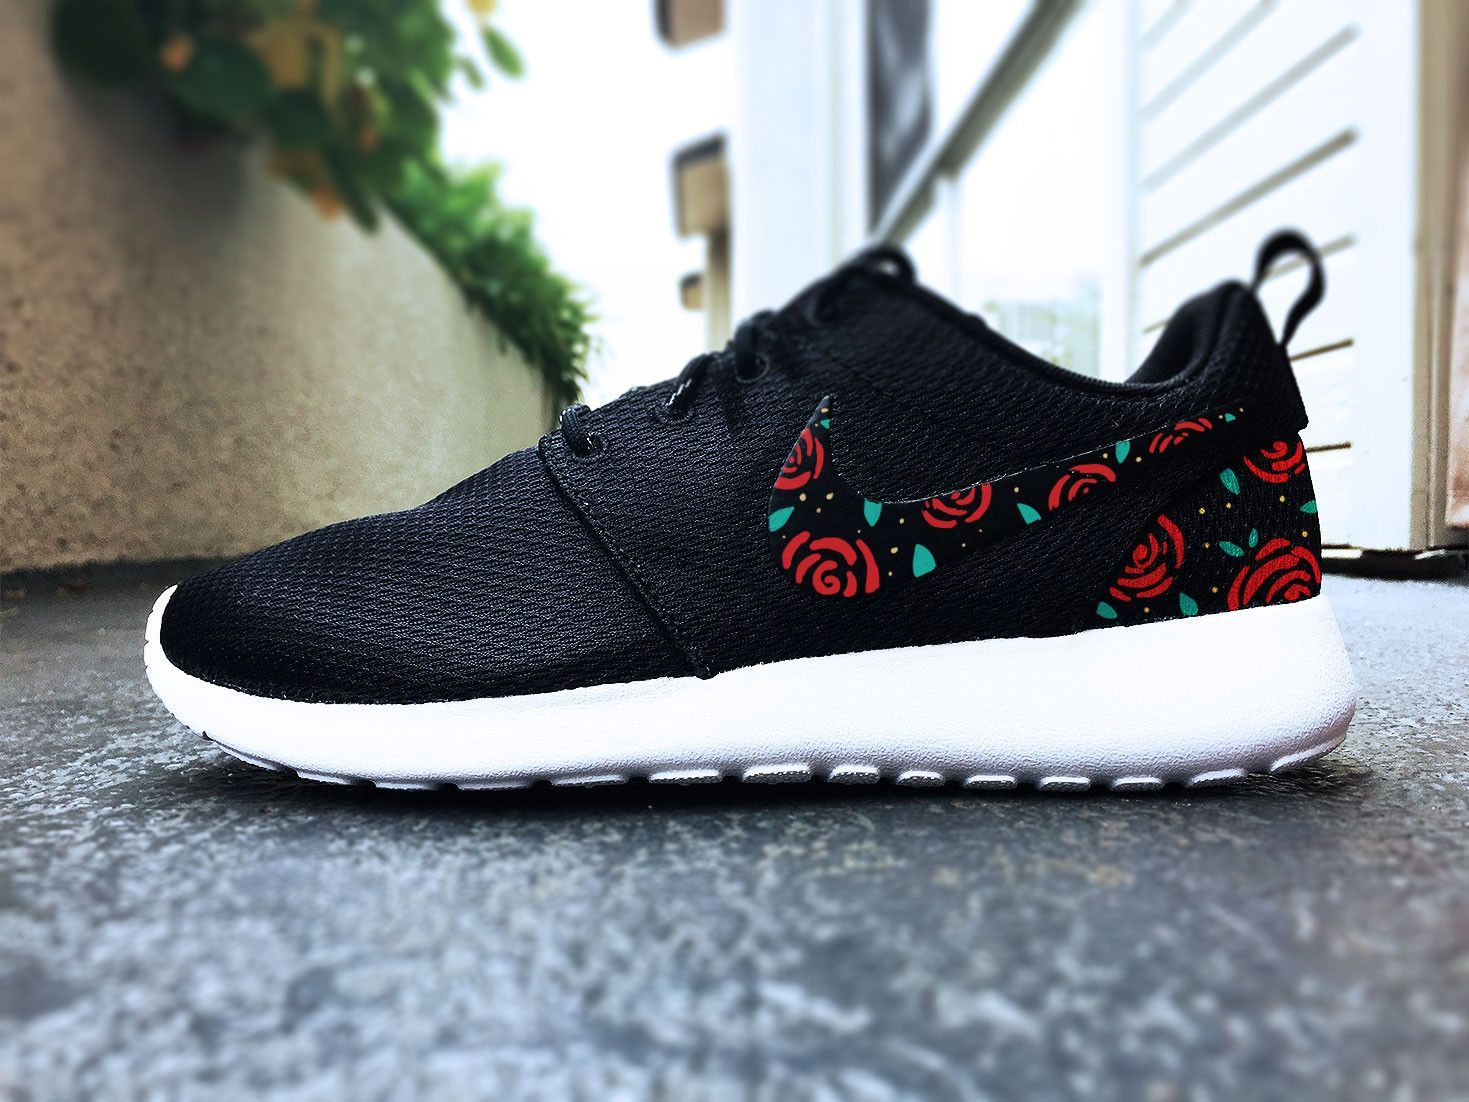 more photos 579cb c5b21 Womens Custom Nike Roshe Run sneakers, Roses design, black and white Rose  trendy design, Black with red roses and gold speckles